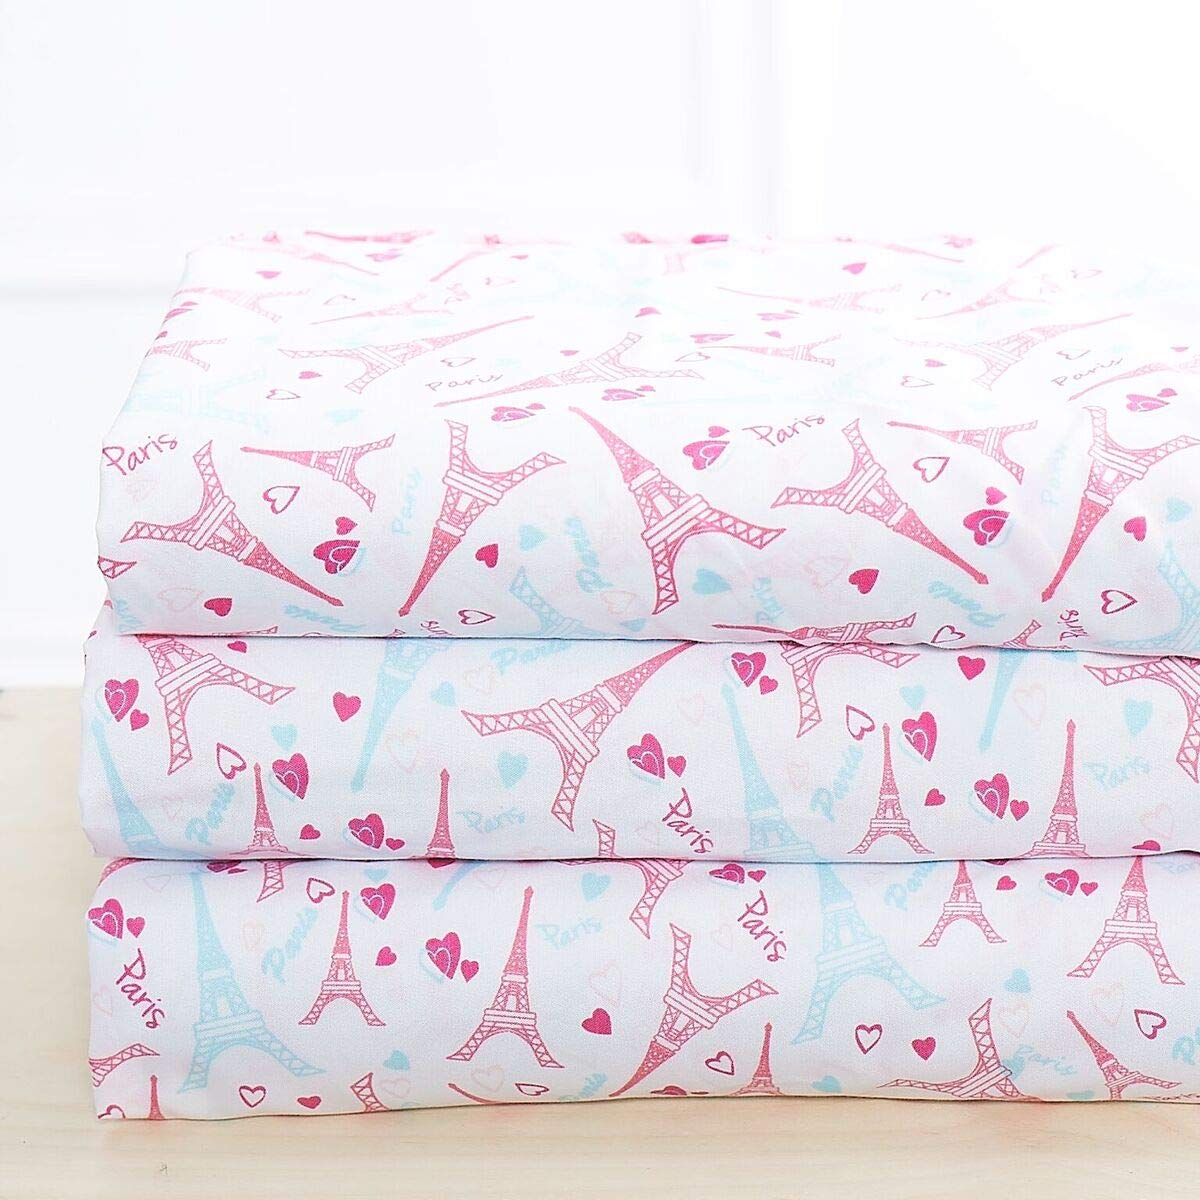 Elegant Home Multicolors White Pink Paris Eiffel Tower Bonjour Design with Hearts 3 Piece Printed Twin Size Sheet Set with Pillowcase Flat Fitted Sheet for Girls/Kids/Teens # Juvy Pink (Twin Size)